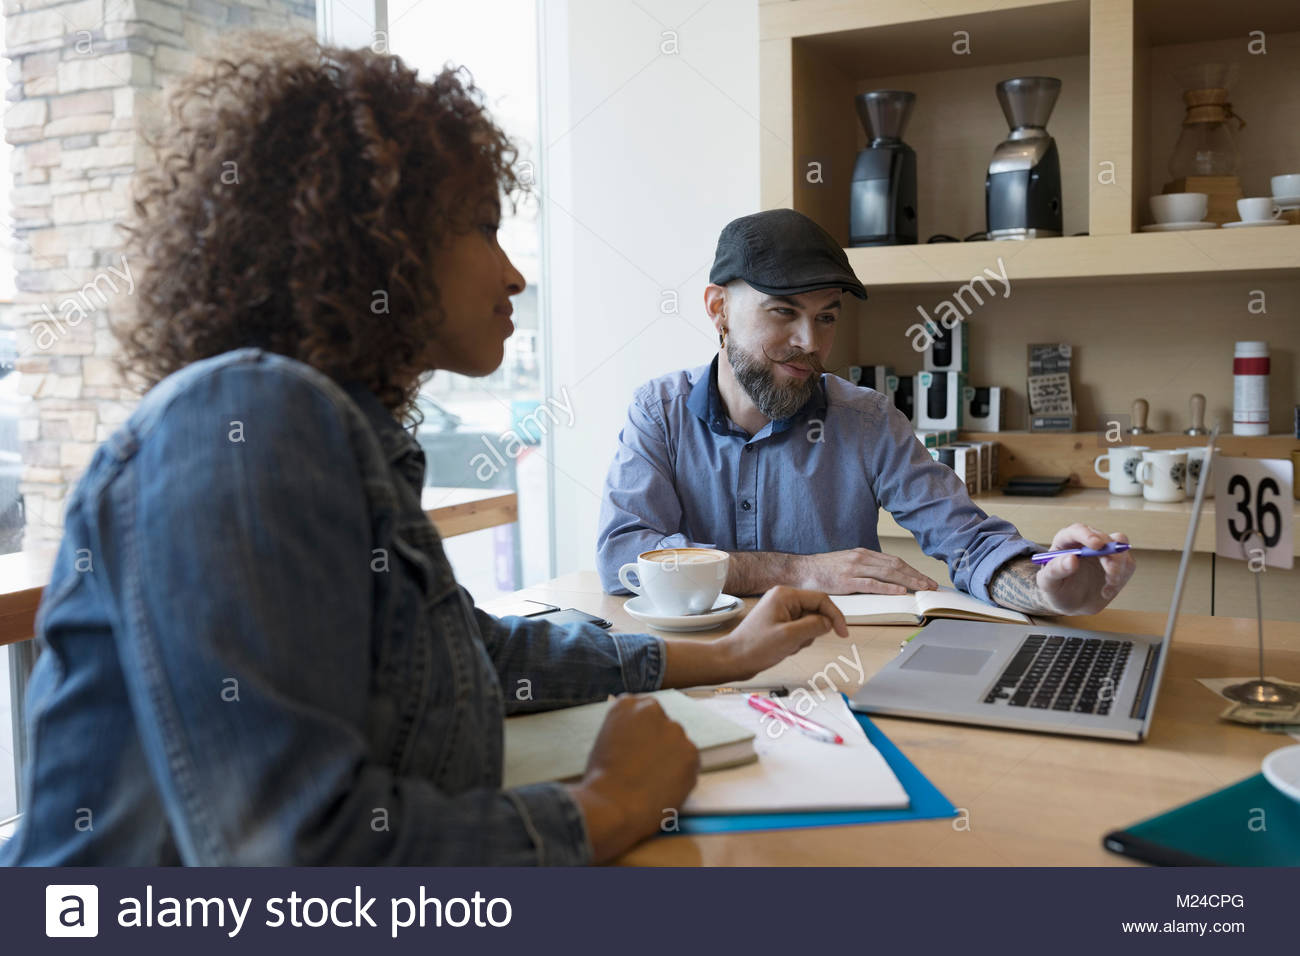 Small business owners working at laptop in cafe - Stock Image